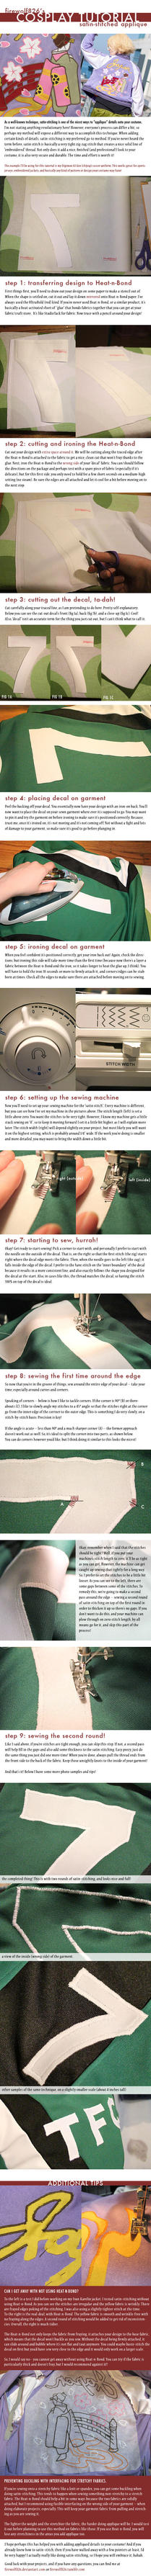 Cosplay Tutorial: Satin-Stitched Applique by firewolf826